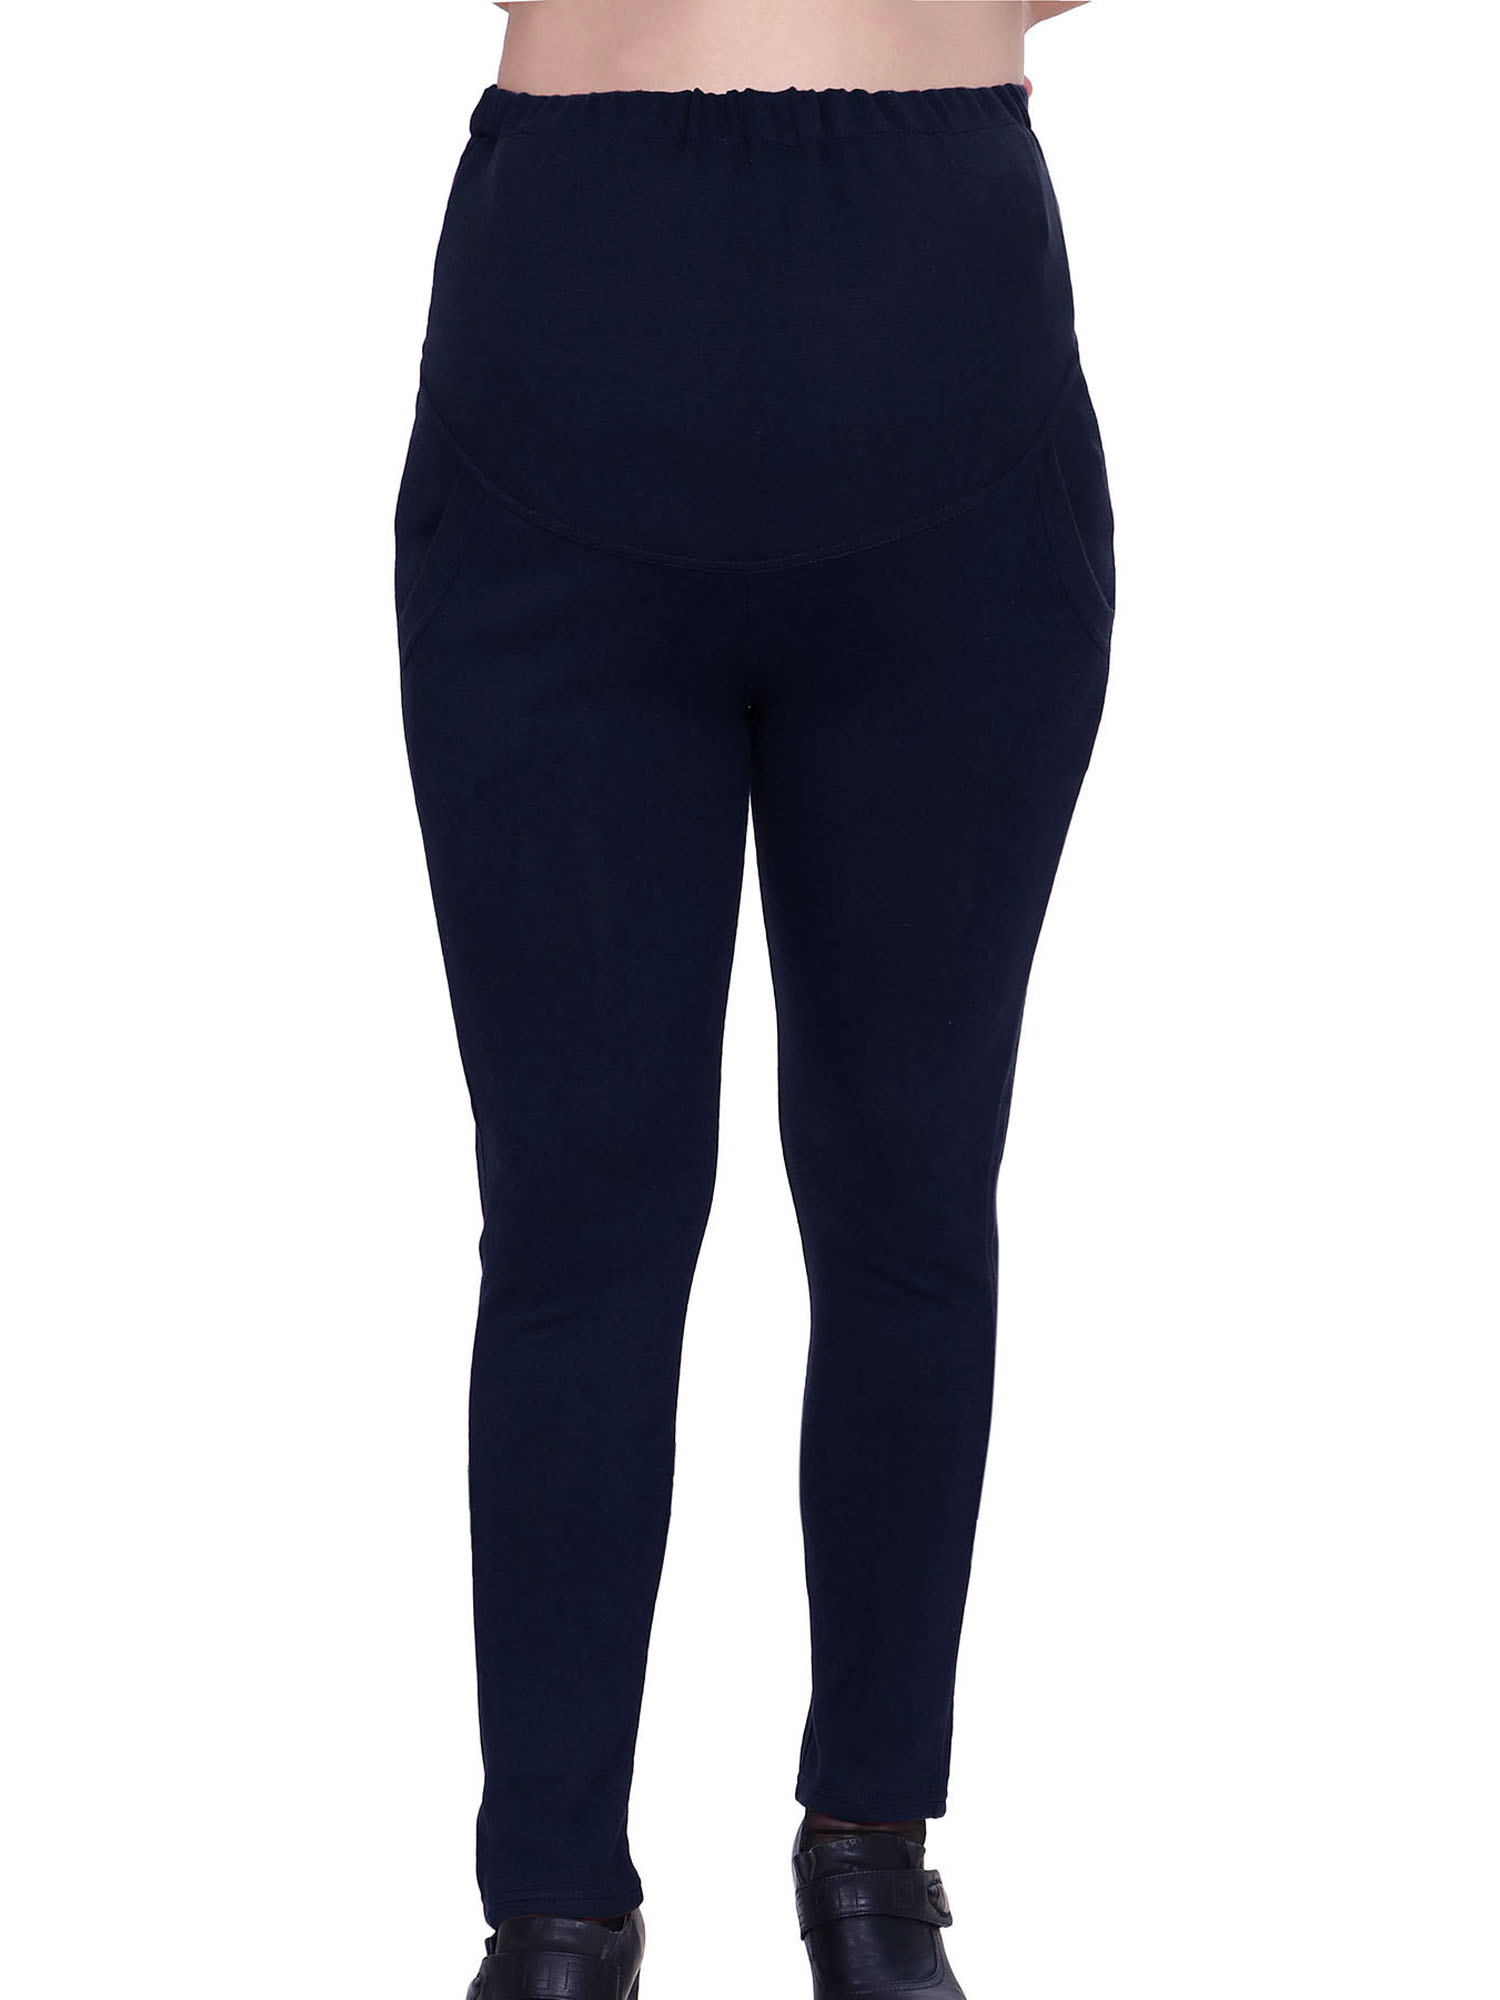 Harcadian High Waist Maternity Legging Pants For Expecting Moms,Navy Blue